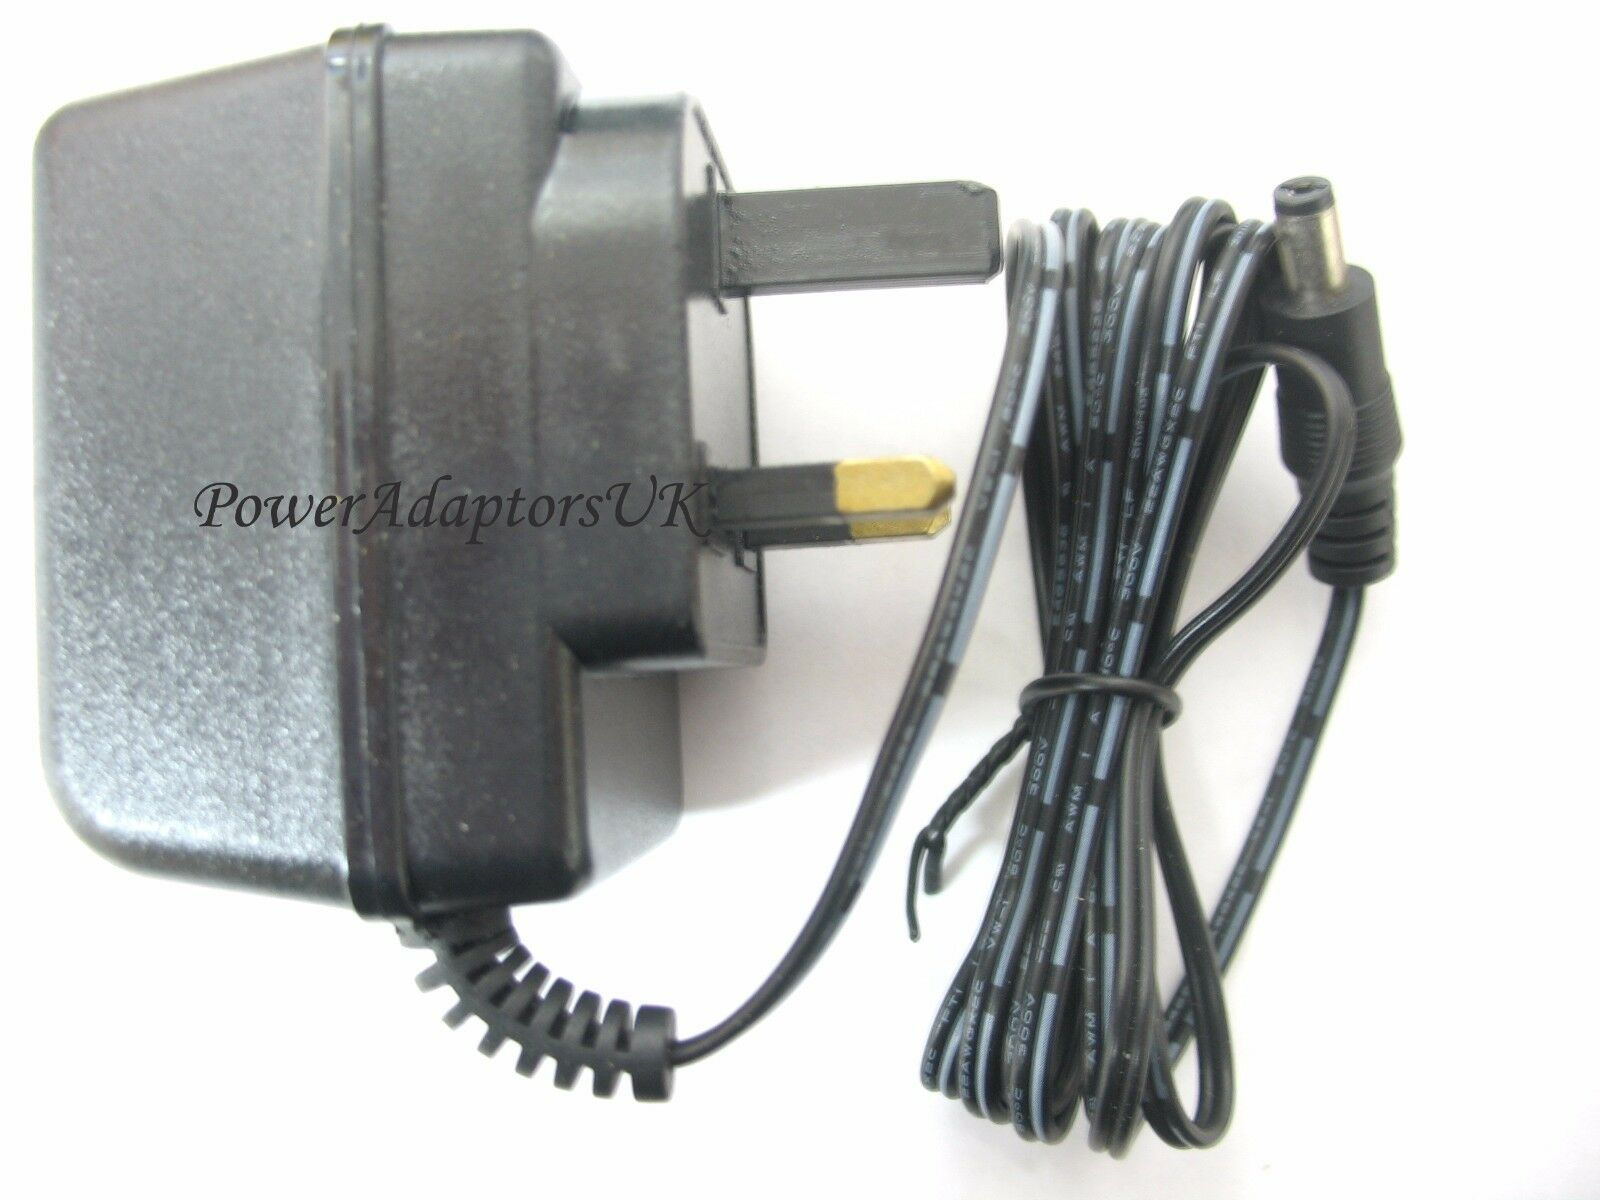 05 Amp 500ma 15 Volt 75va Ac Output Power Adaptor Supply Charger 1 Regulated Of 2 See More